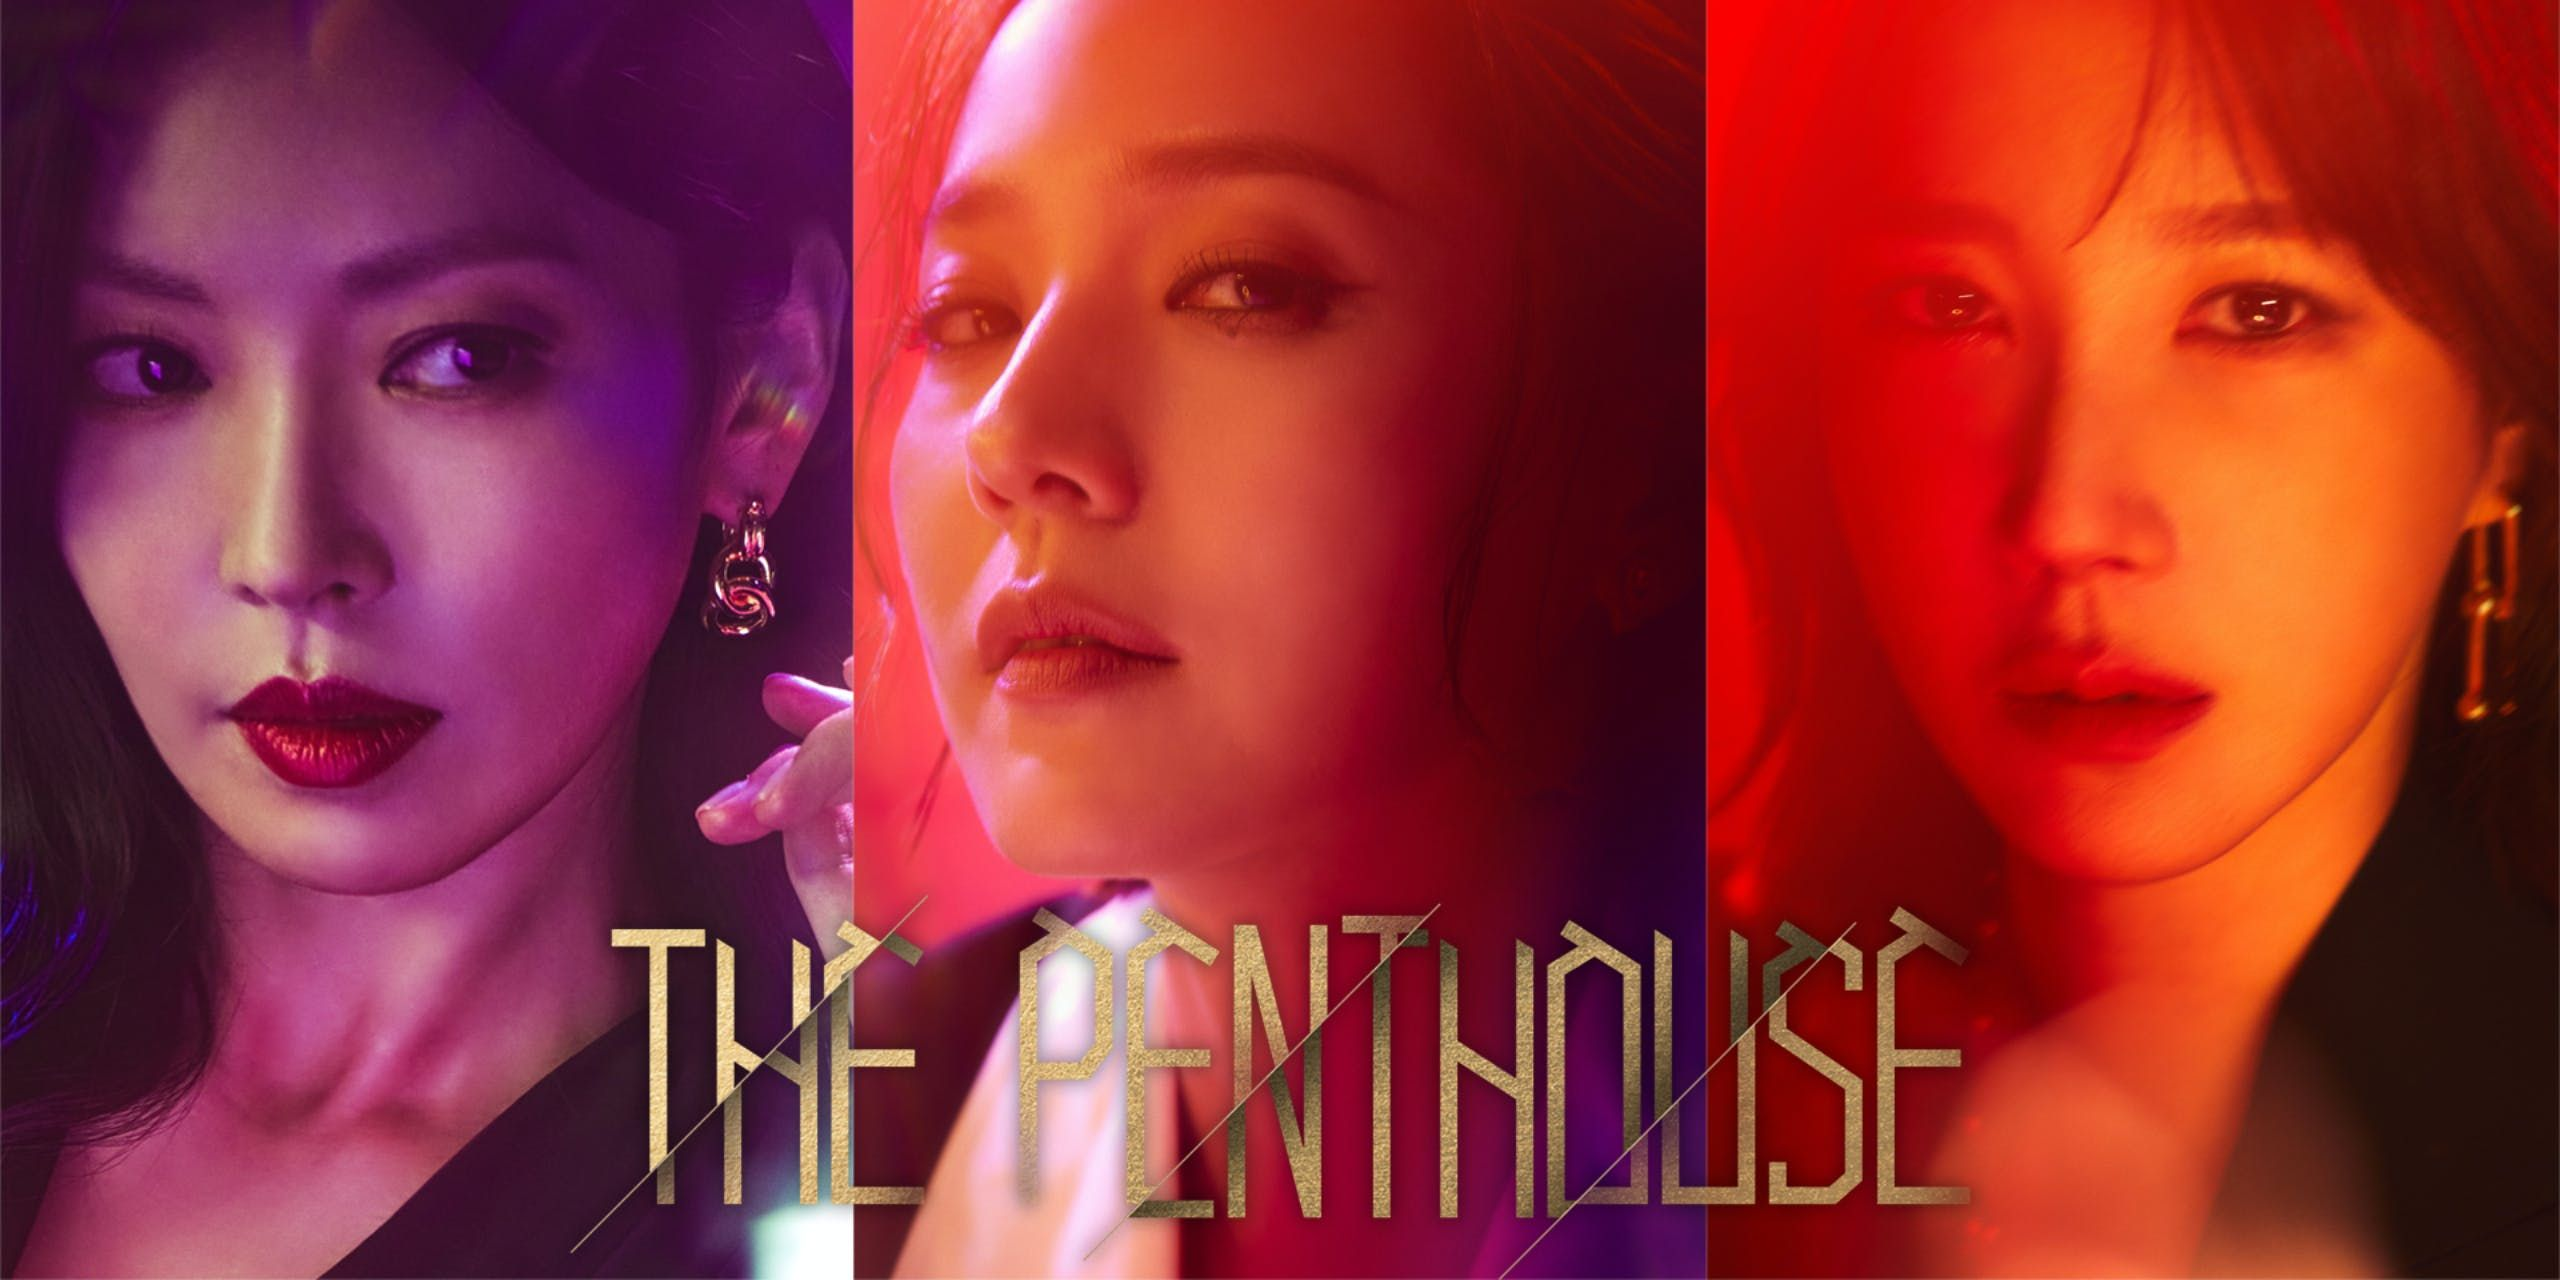 Last episode Penthouse 2 episode 13 Spoilers, Release Date, Predictions